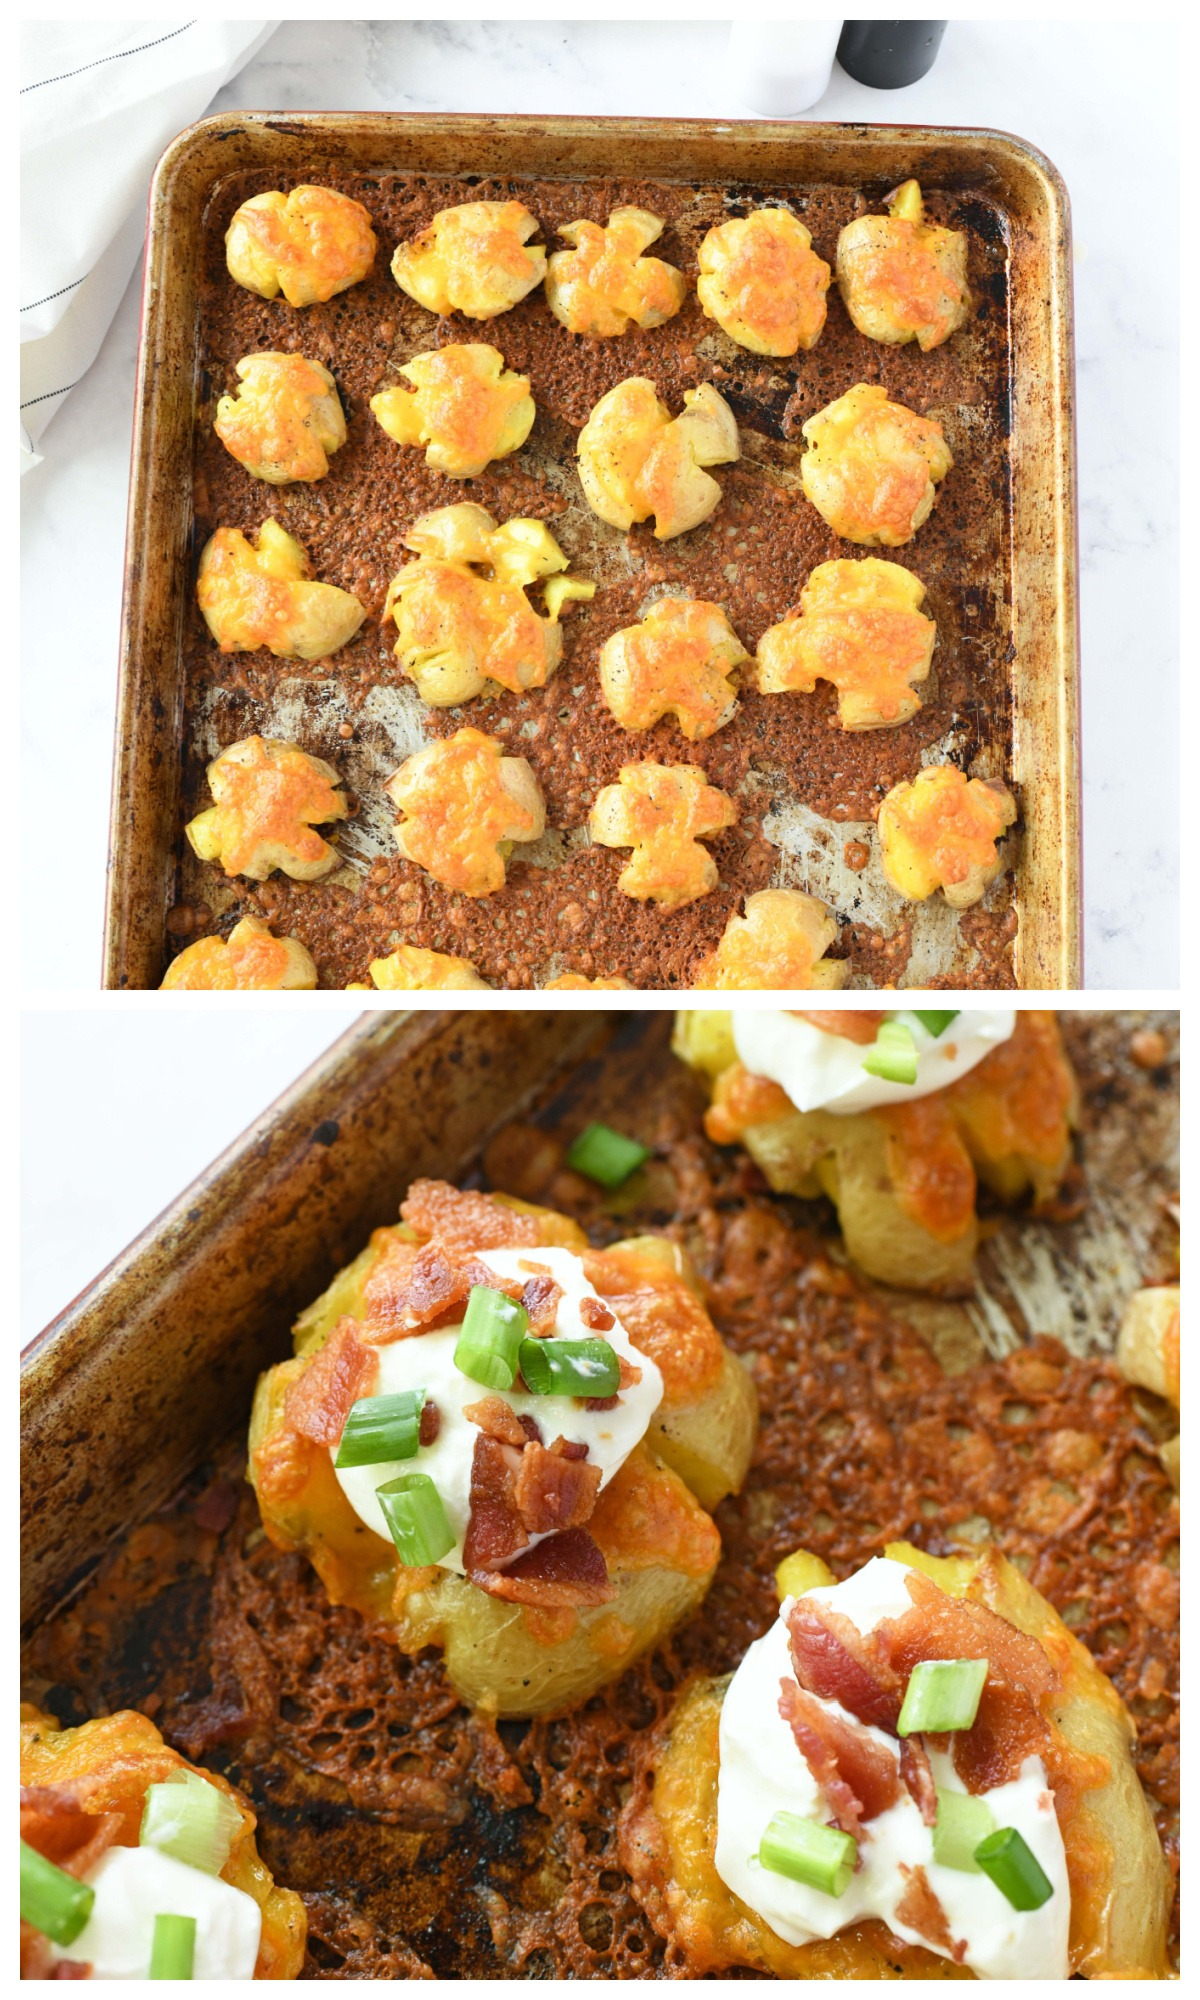 Loaded Smashed baby potatoes on a baking sheet with toppings.